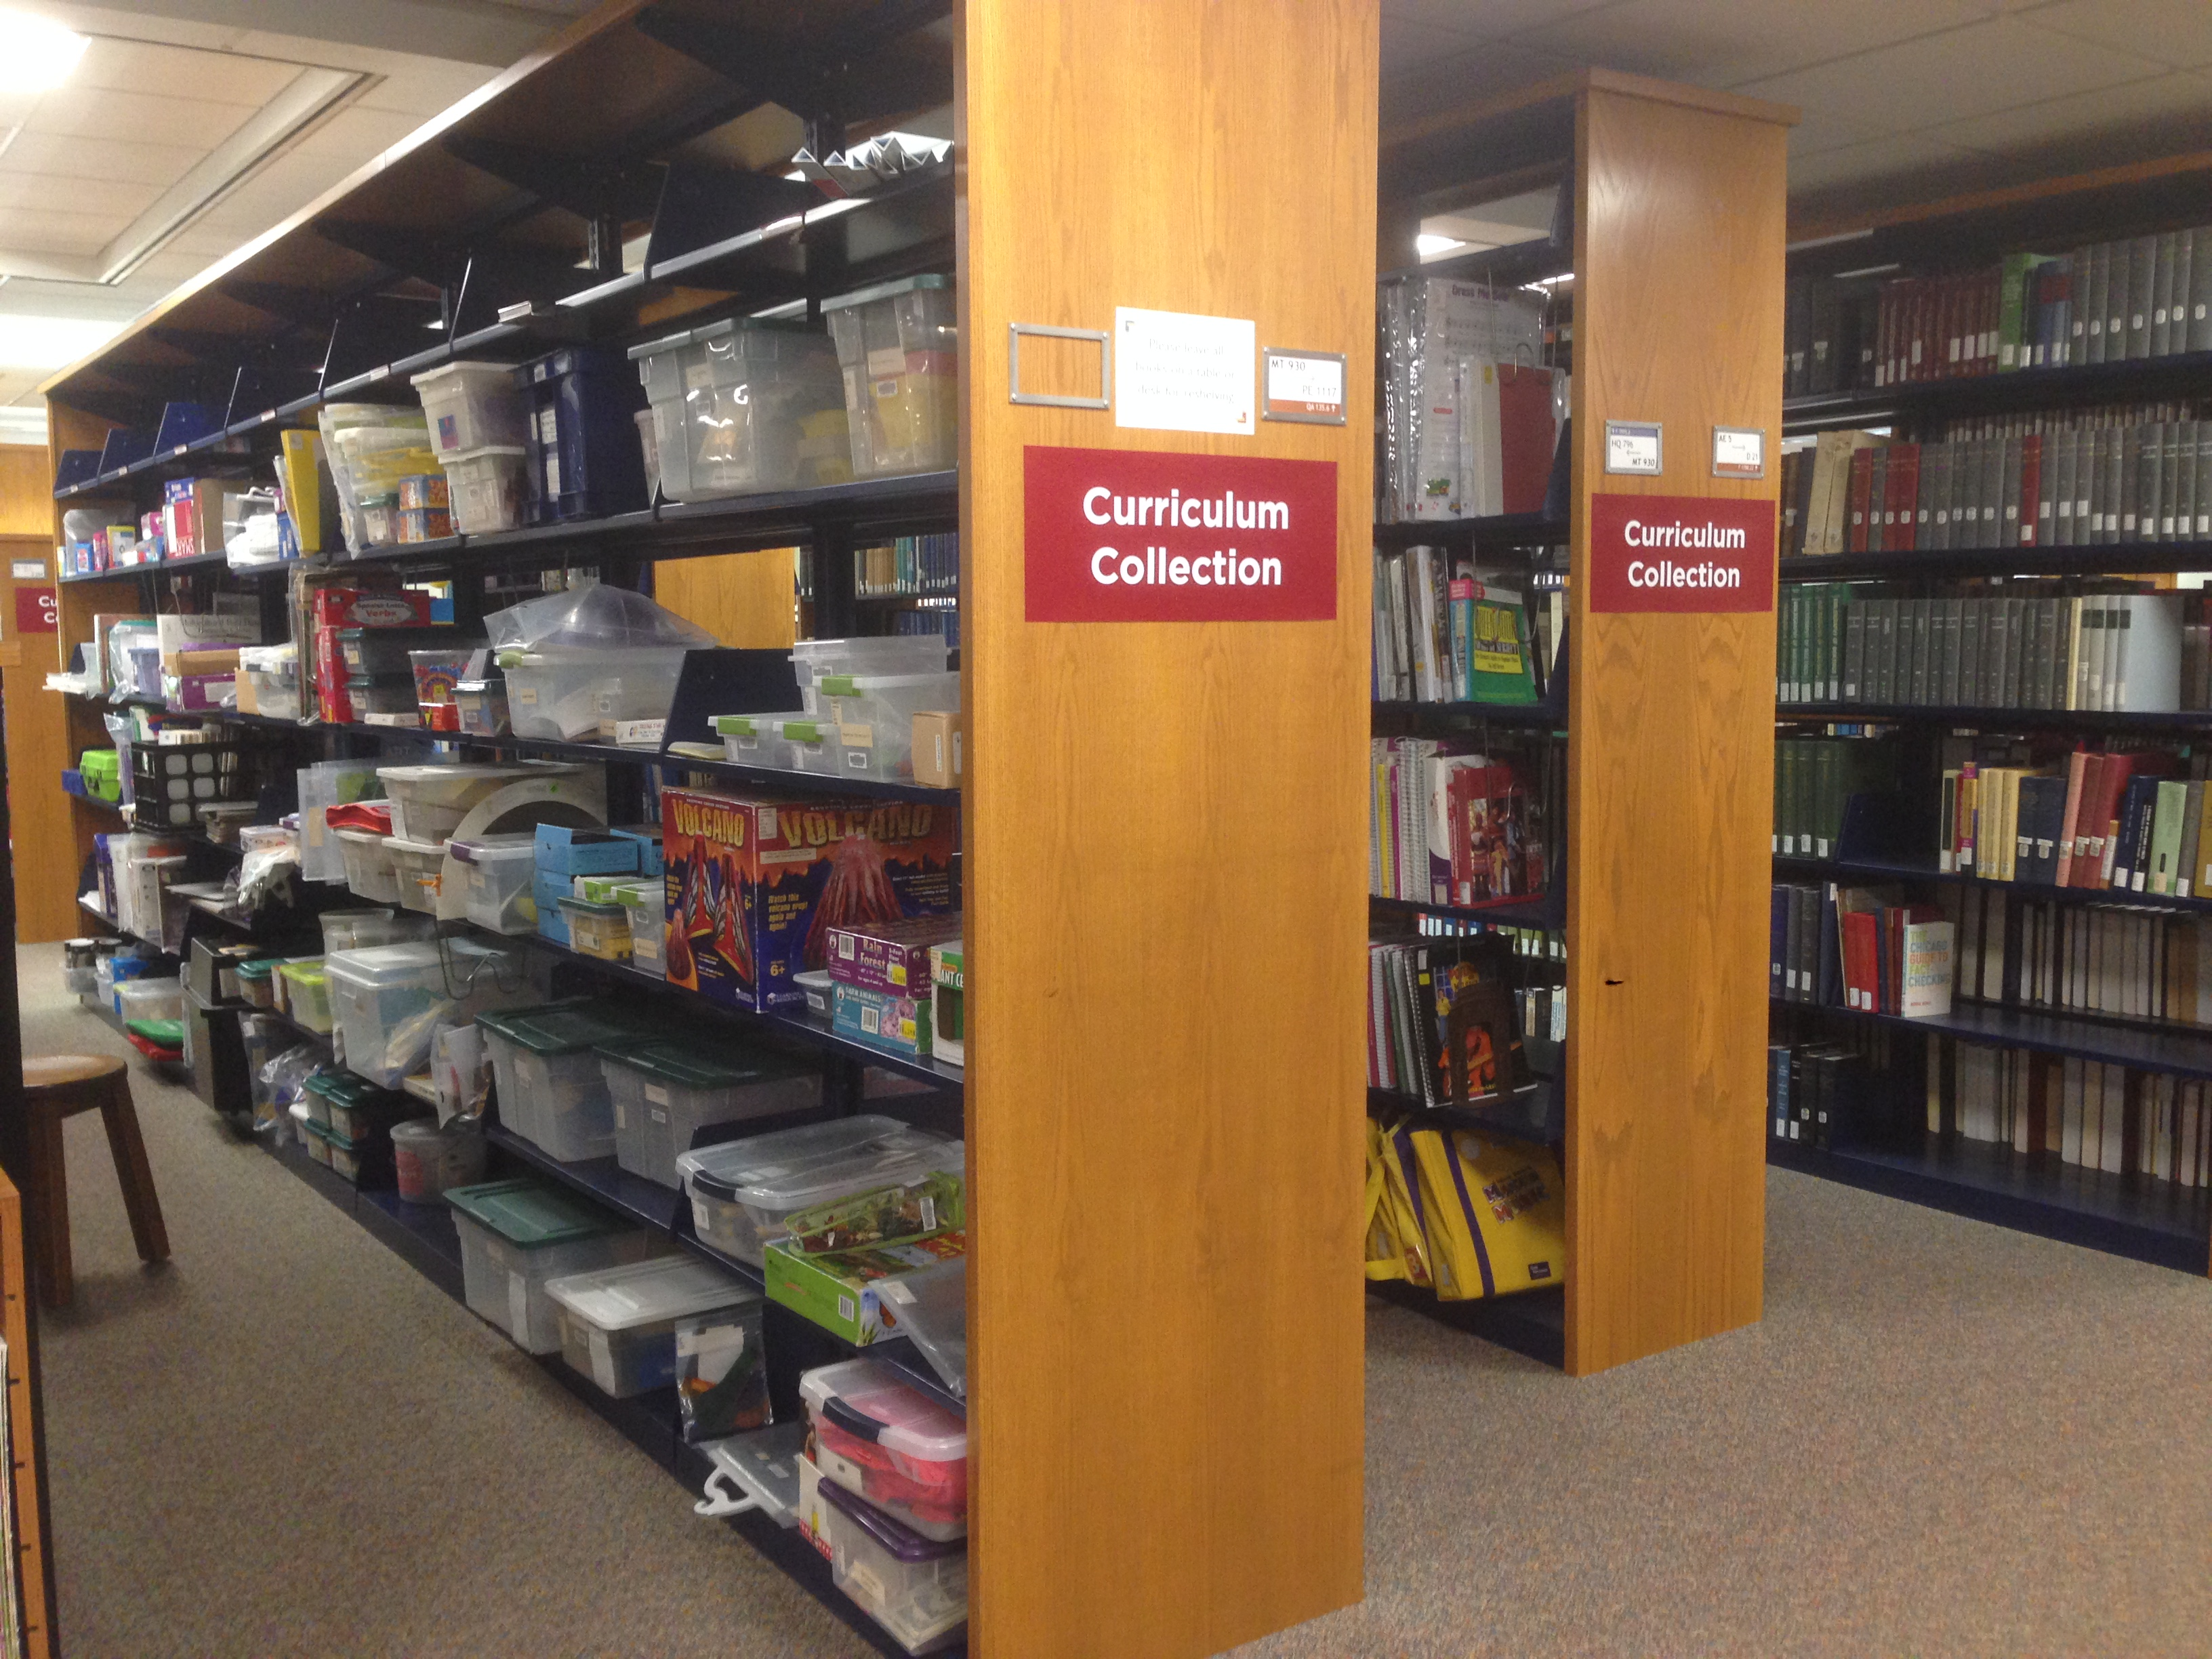 Photograph of the shelves of Hekman library's Curriculum Collection.